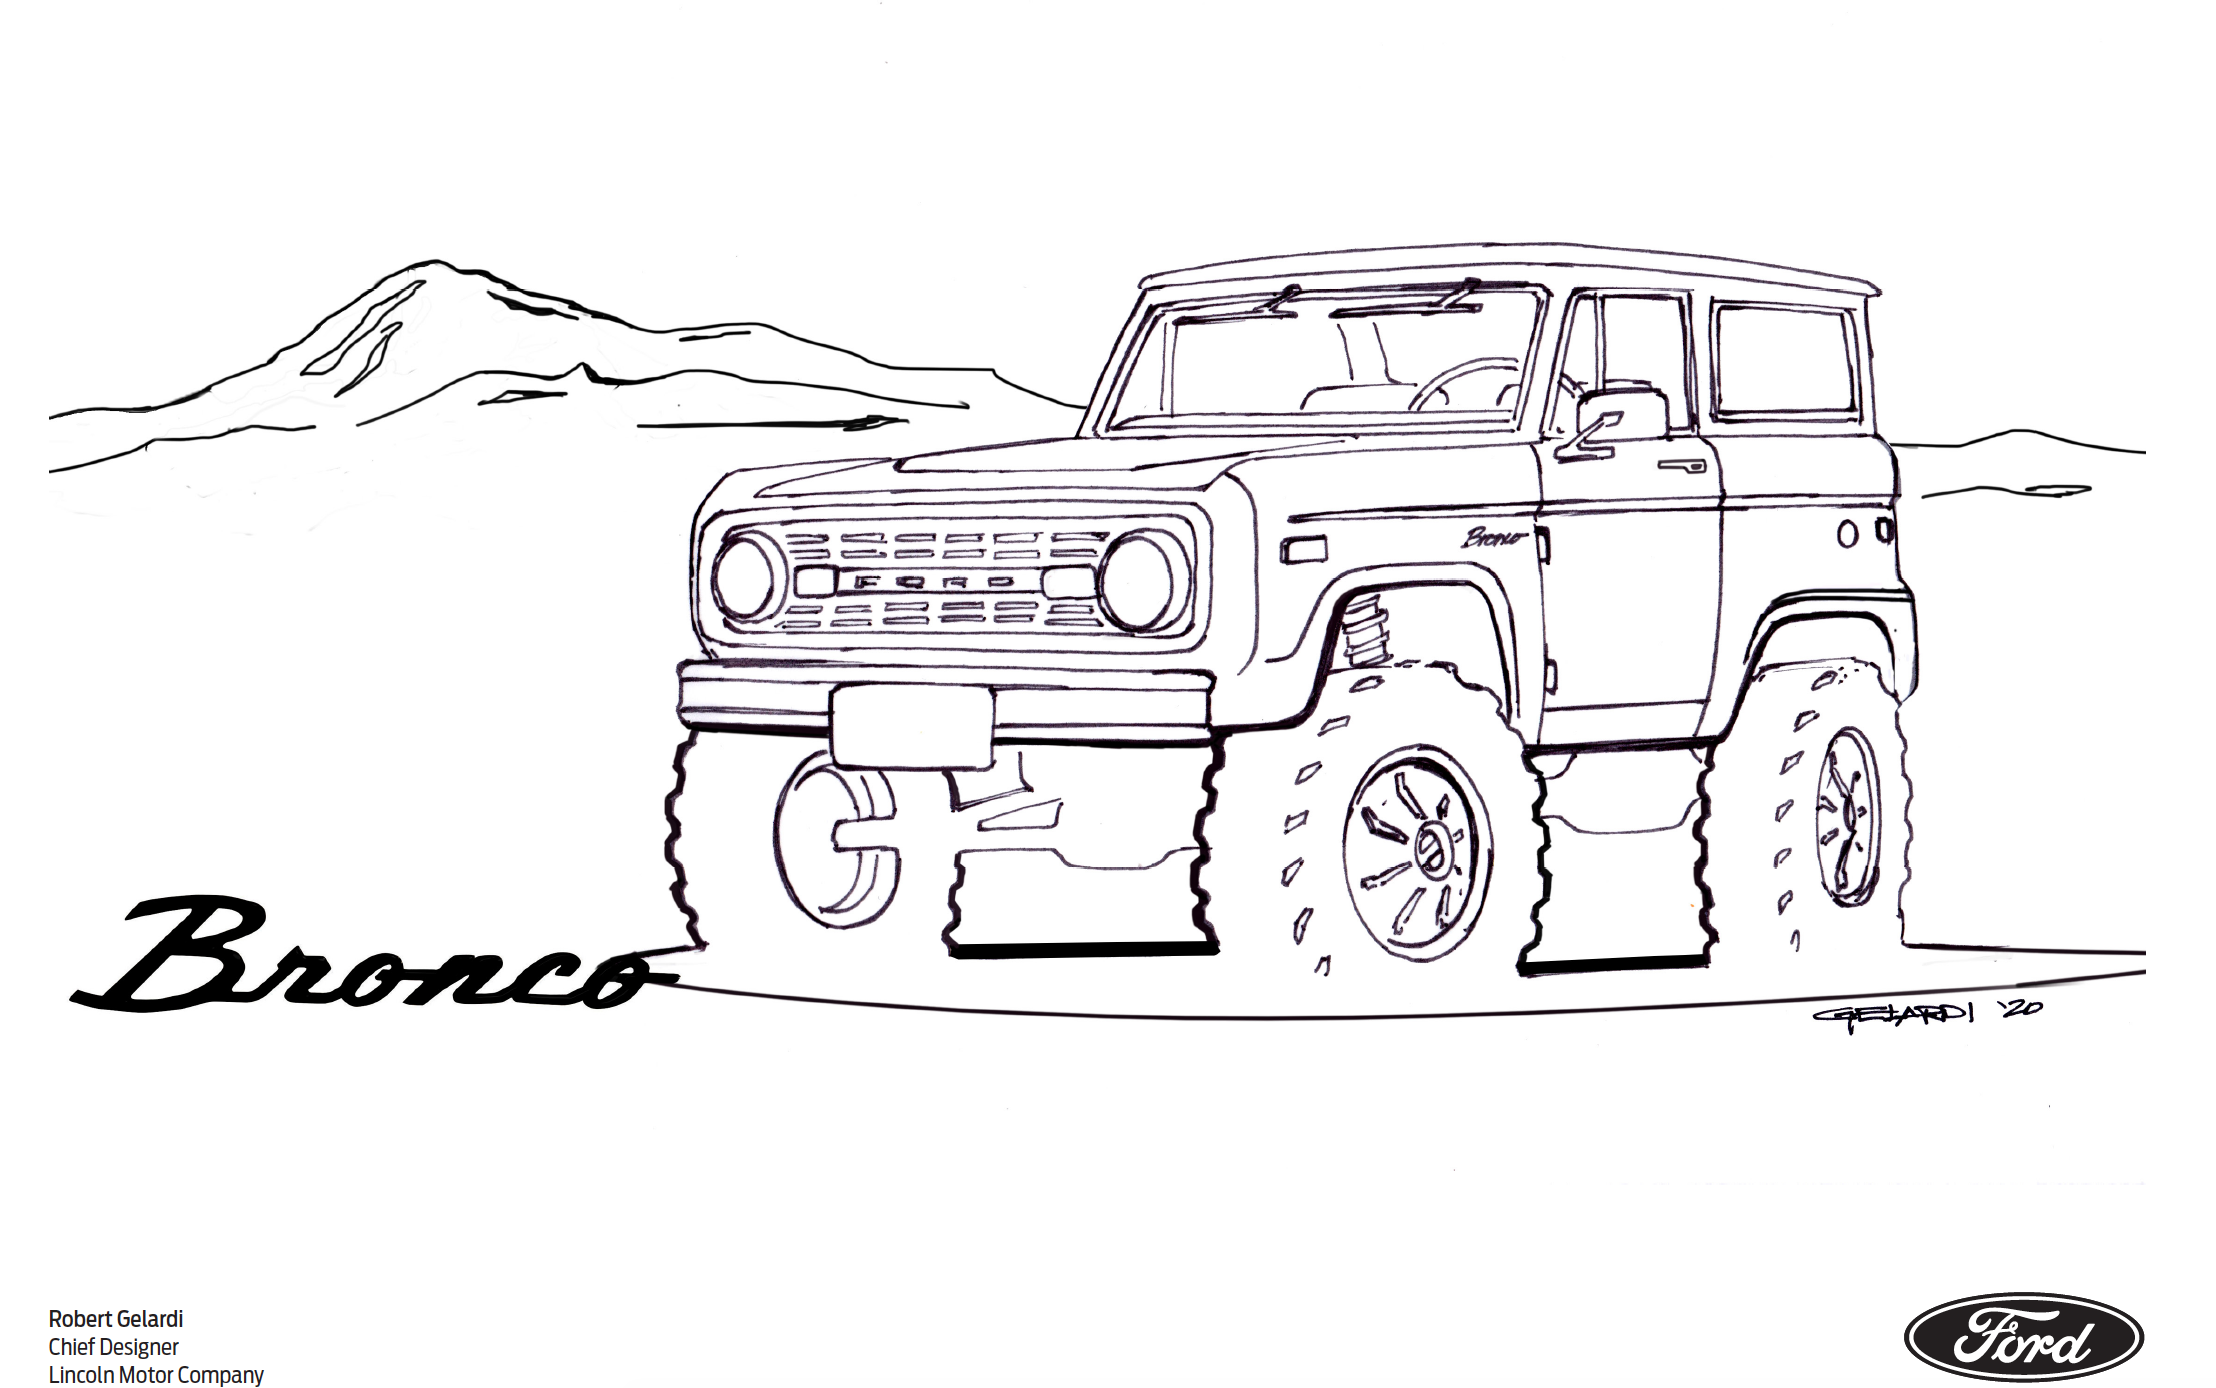 Ford Bronco coloring book page